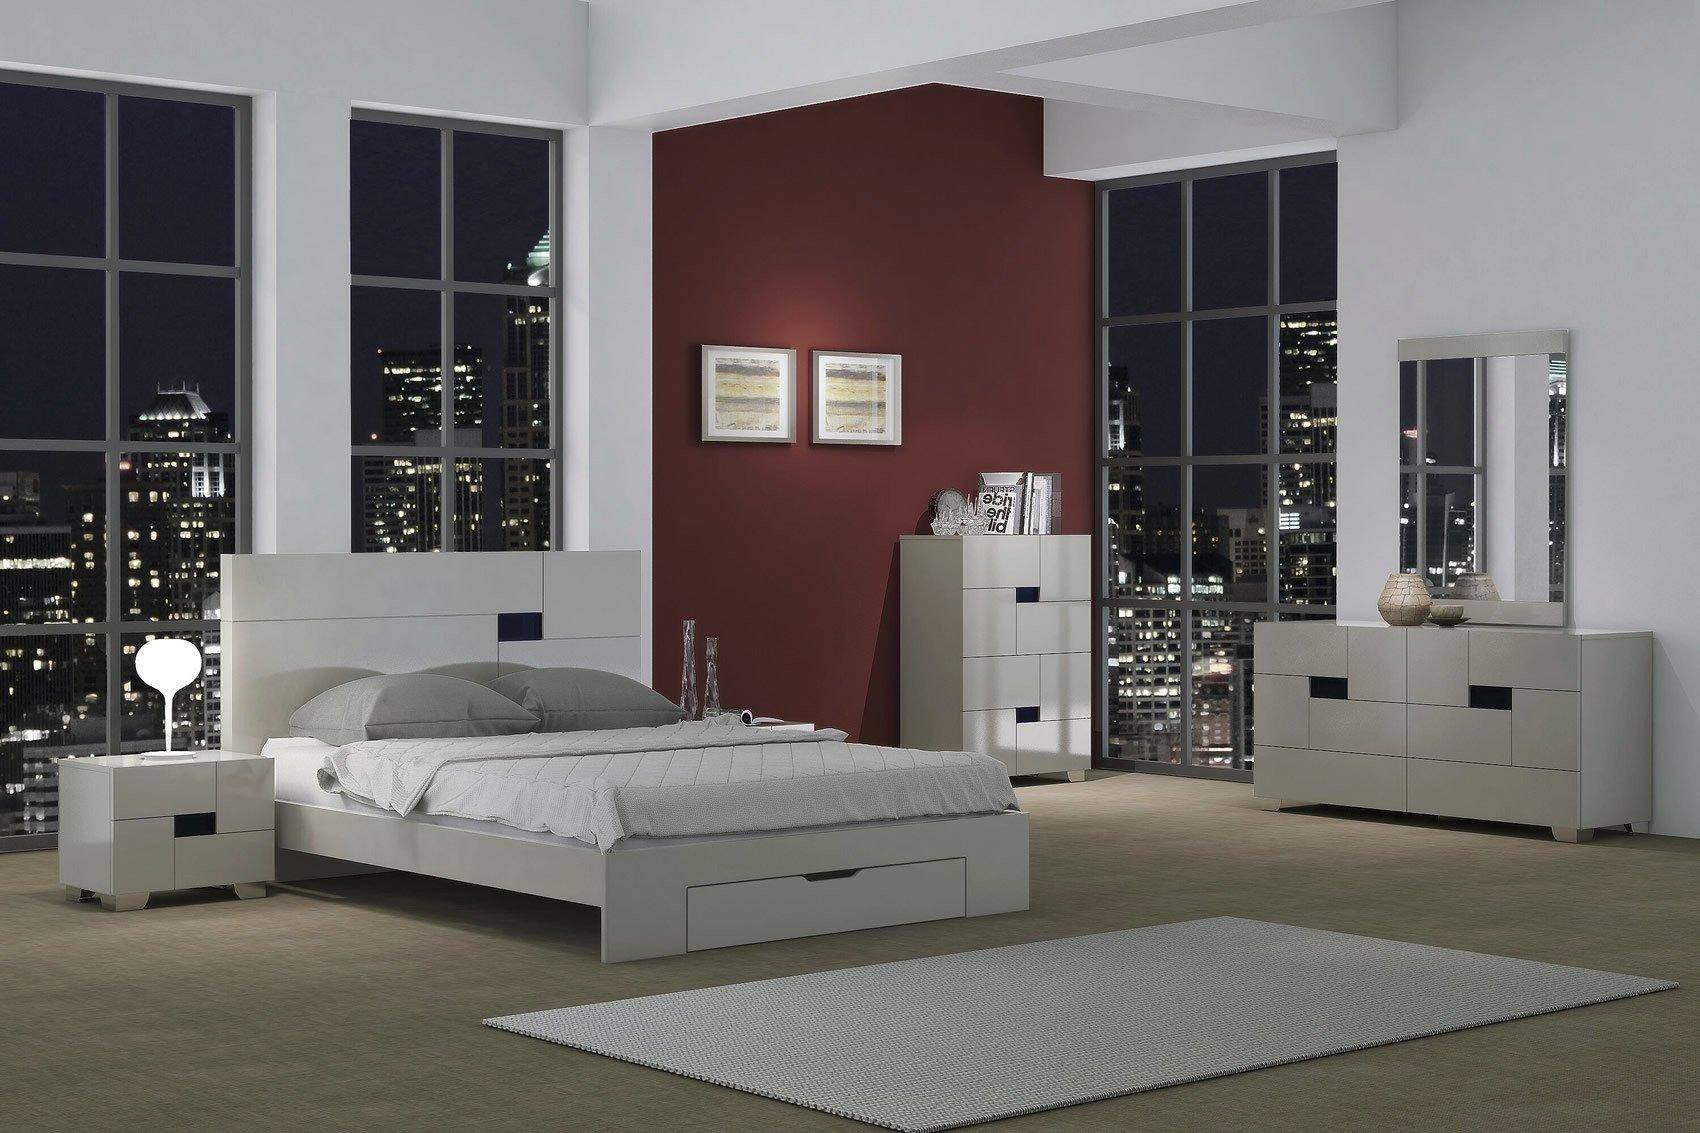 Red Grey and Black Bedroom Fresh Contemporary Light Gray Lacquer Storage Queen Bedroom Set